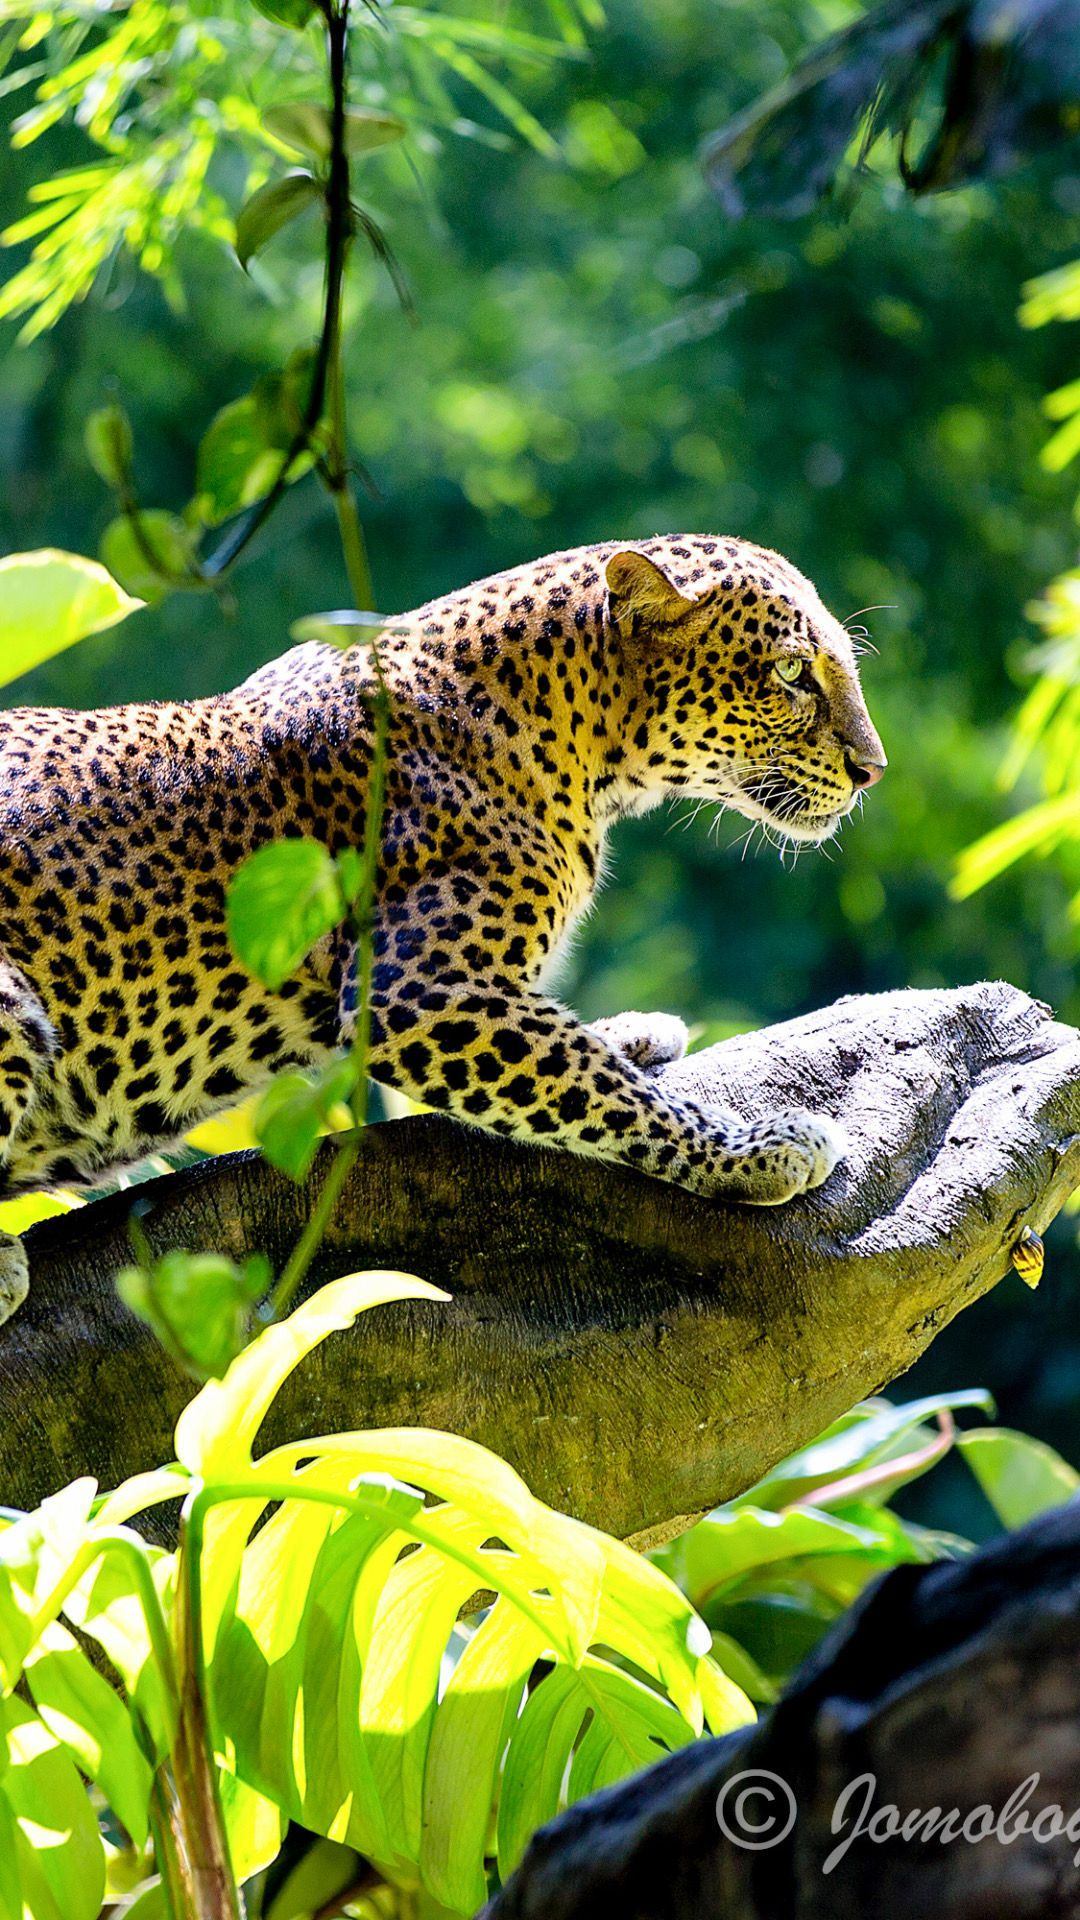 Jaguar Wallpaper, Iphone Wallpaper, Black Jaguar, Wallpaper Free Download,